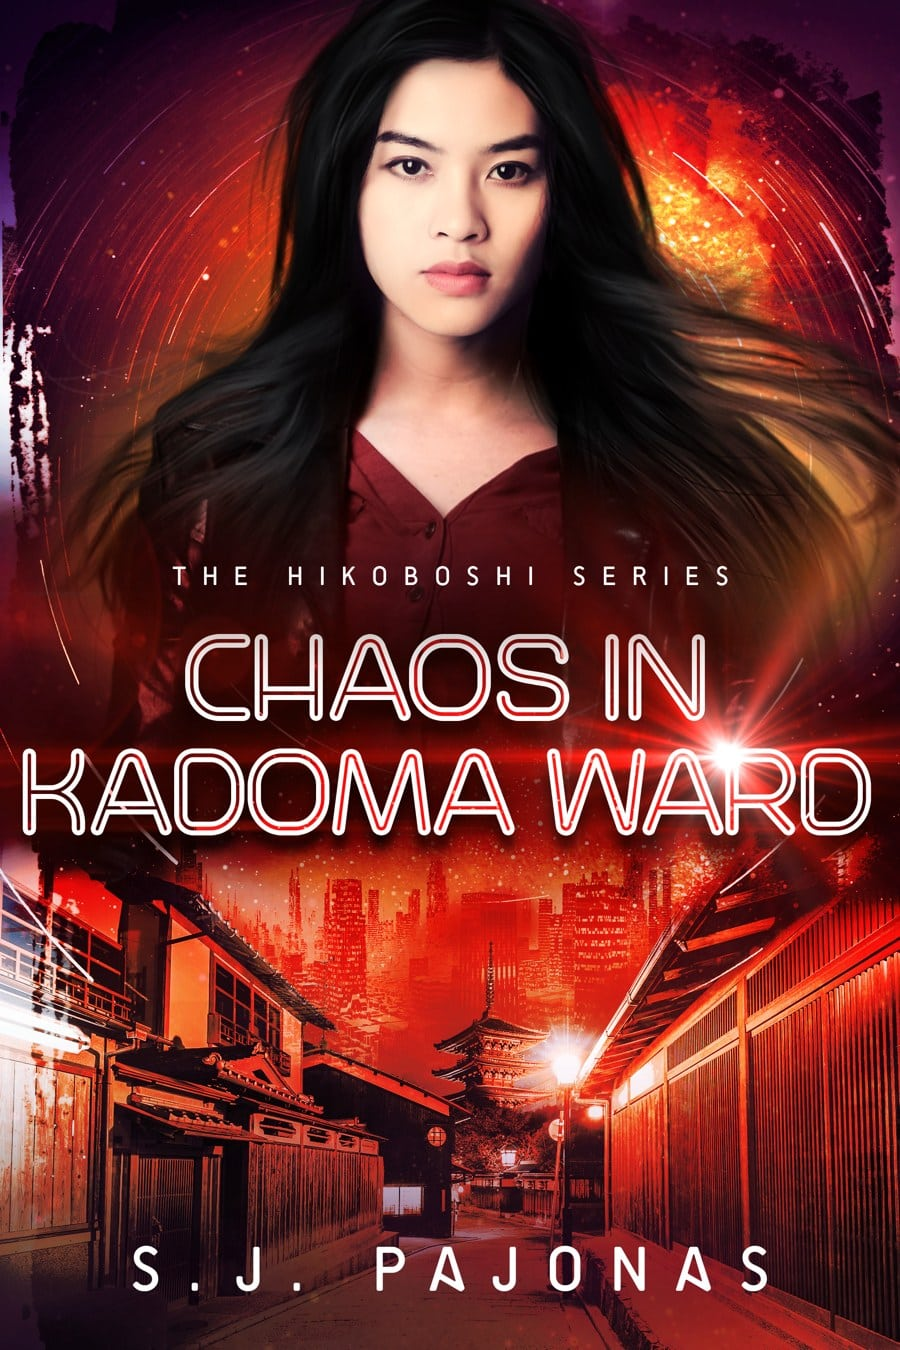 CHAOS IN KADOMA WARD is now available on Apple Books, Nook, Kobo, and Google Play.